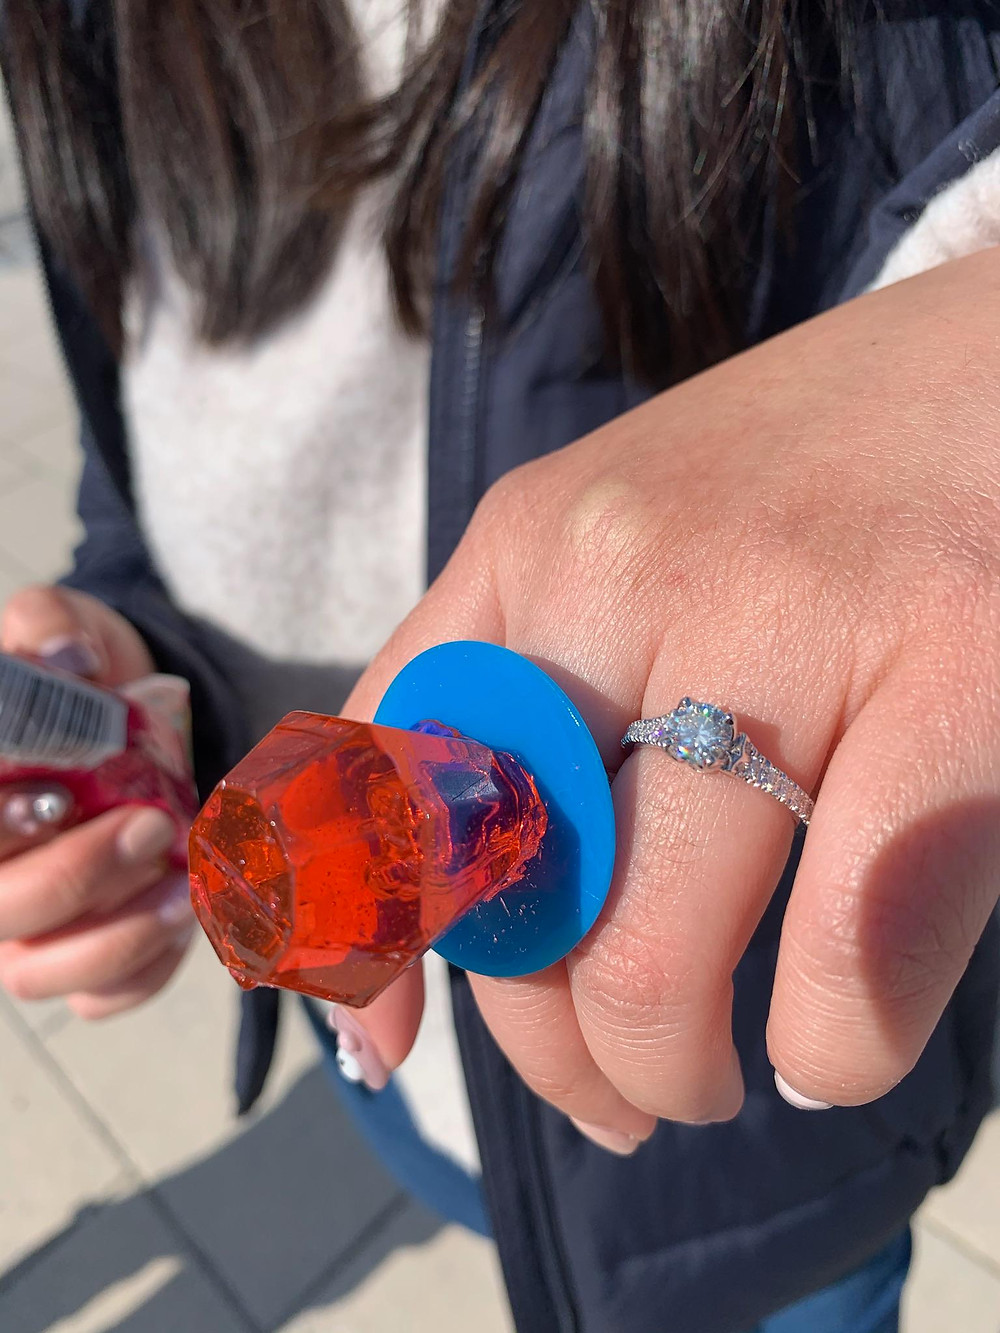 My boyfriend proposed during quarantine and we got engaged with a ring pop.